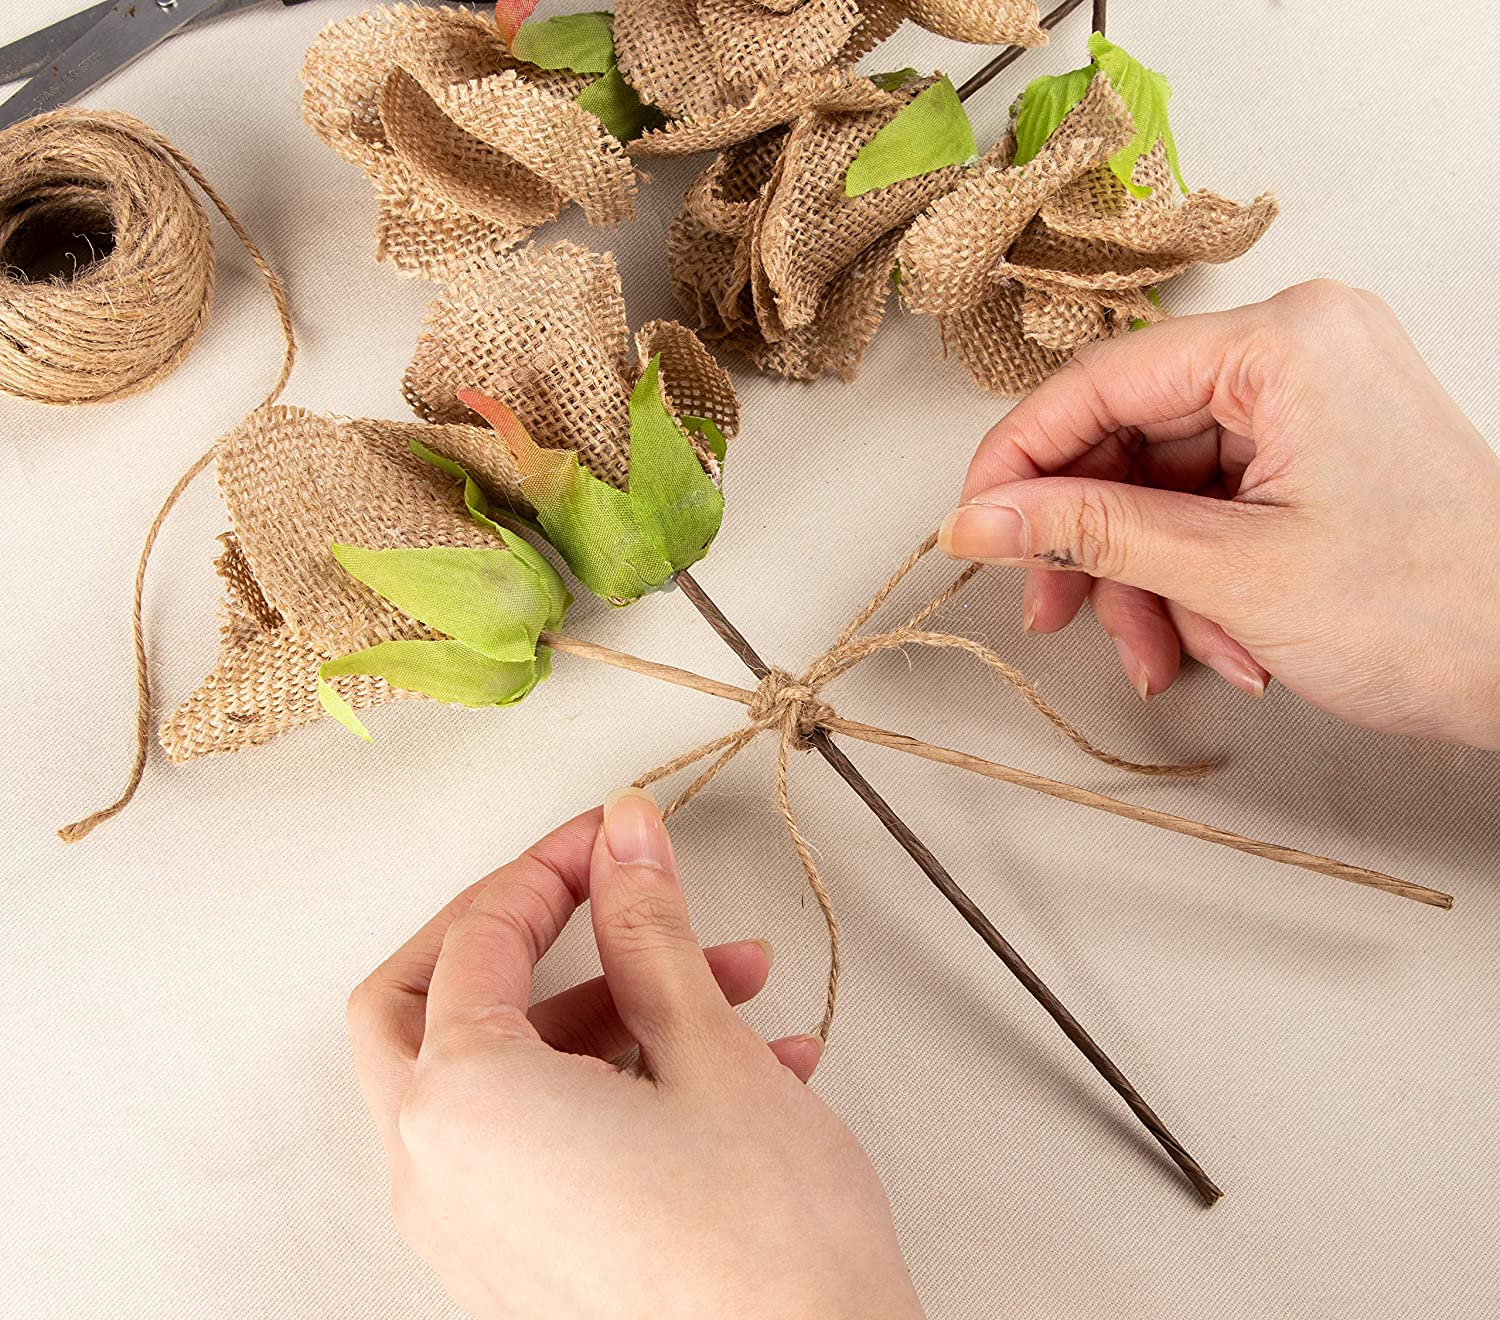 Genie Crafts 6-Count Burlap Rose with Stem Jute Flower Picks for Flower Arrangements DIY Crafts and Decor Wedding 2.5 x 9.75 Inches